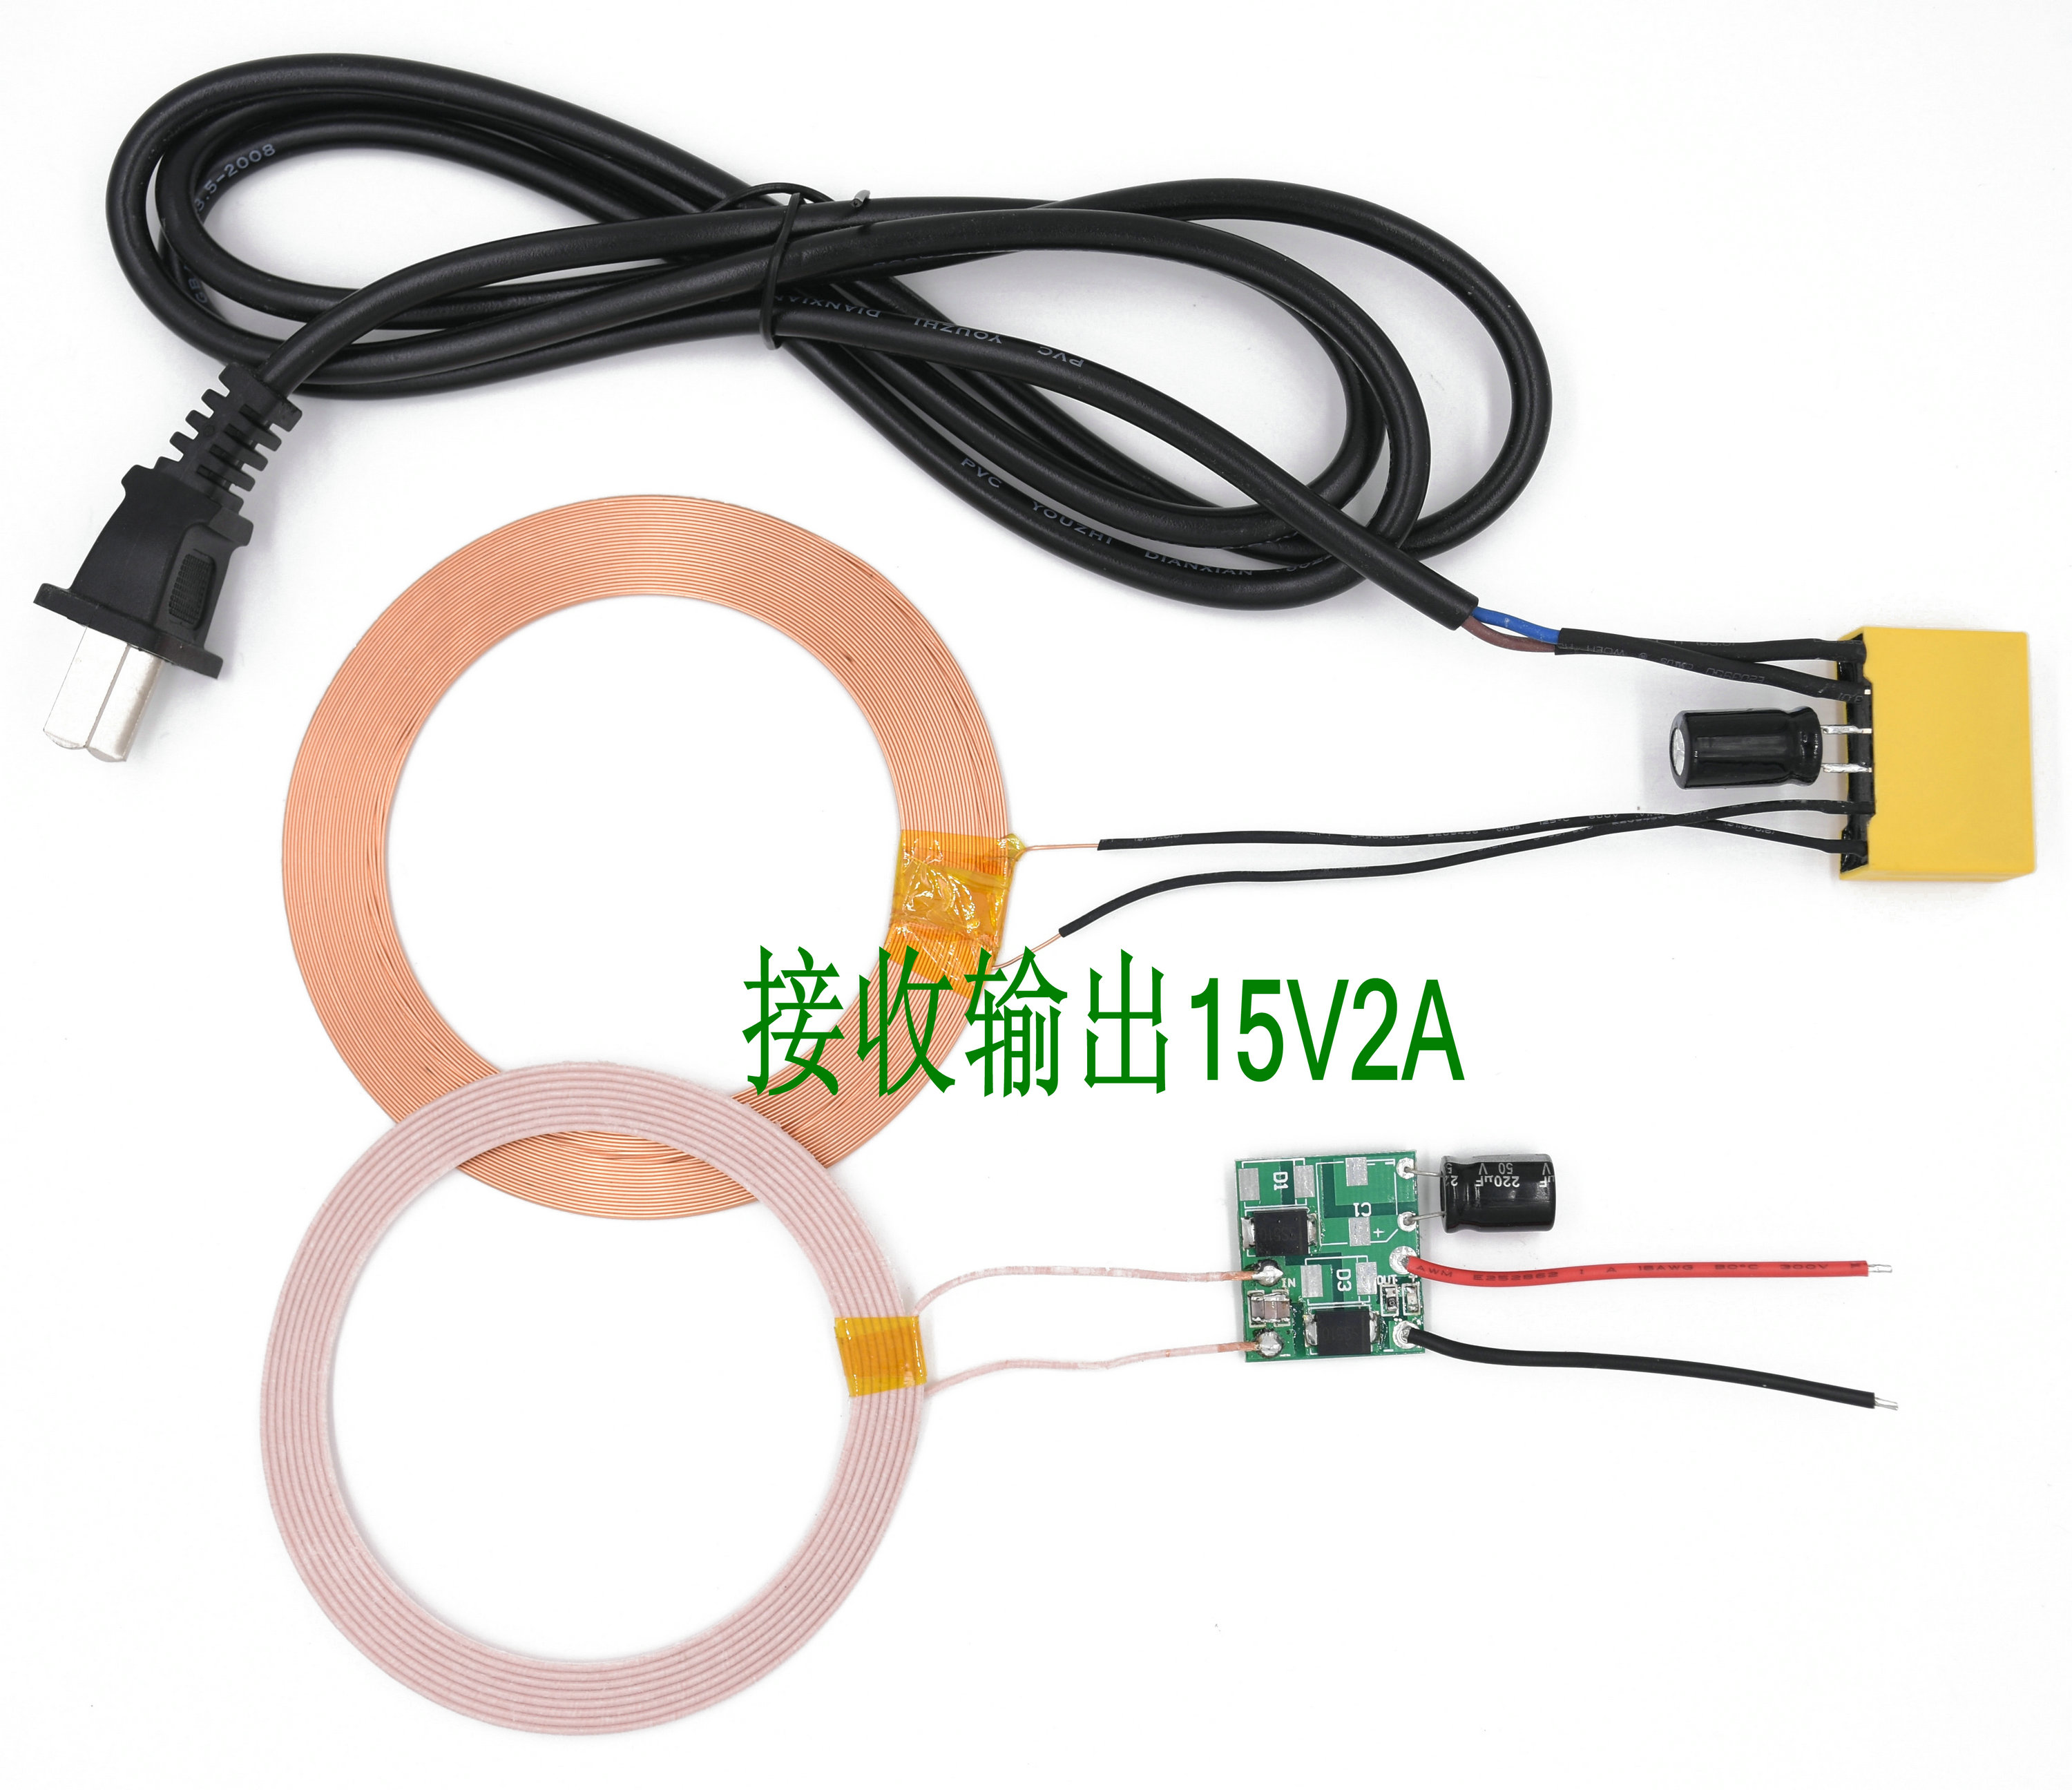 15V2A high power wireless power supply module wireless charging module wireless transmission module esp 07 esp8266 uart serial to wifi wireless module